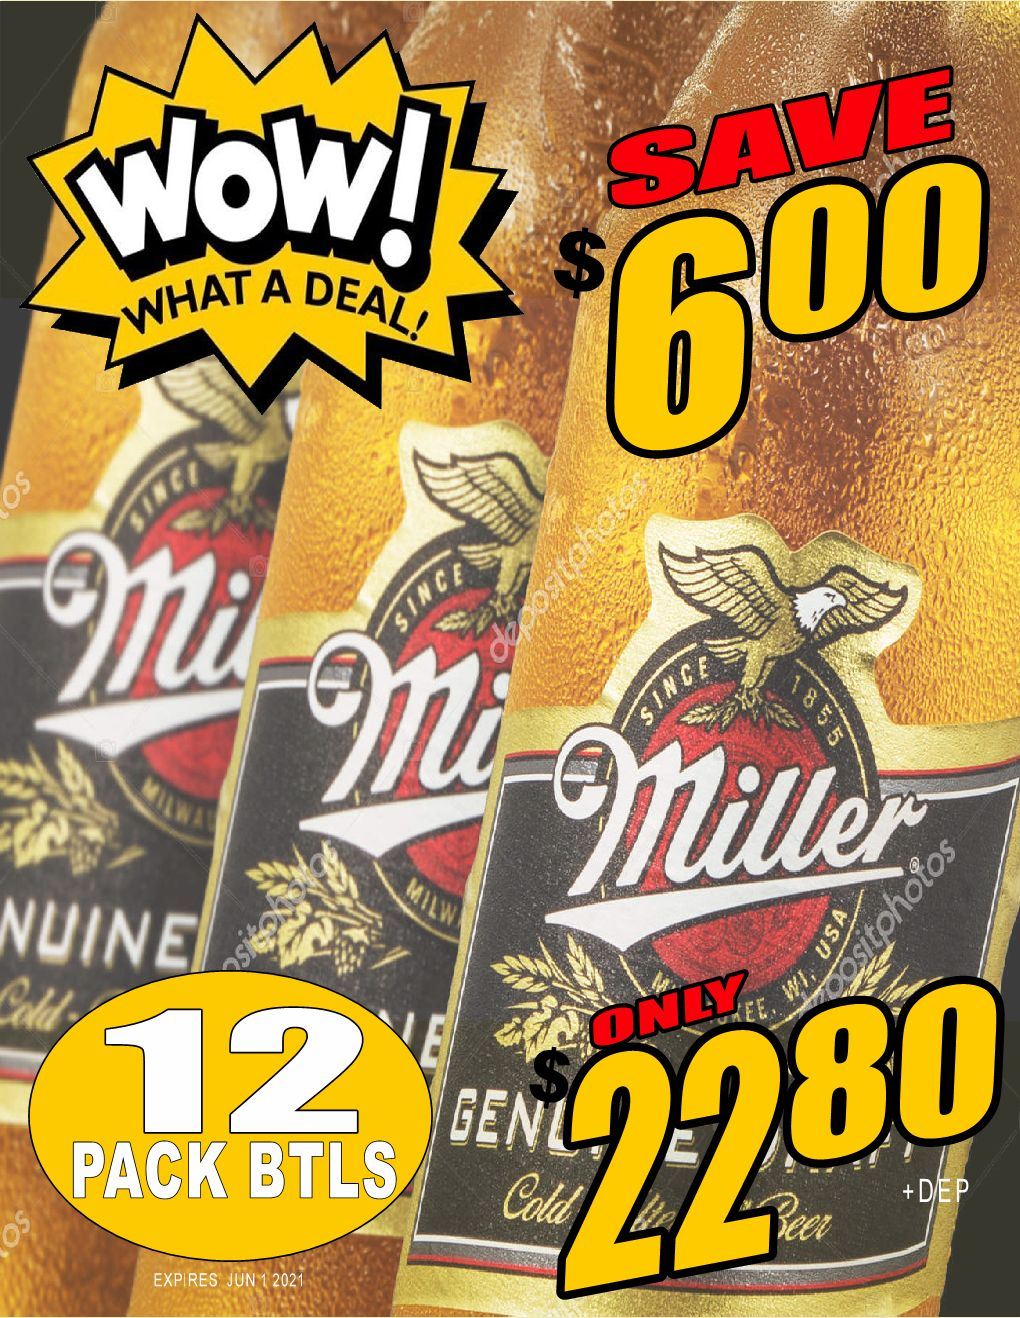 WOW!! Miller Genuine Draft - 12PB - Save $6.00!! WOW DEAL!!